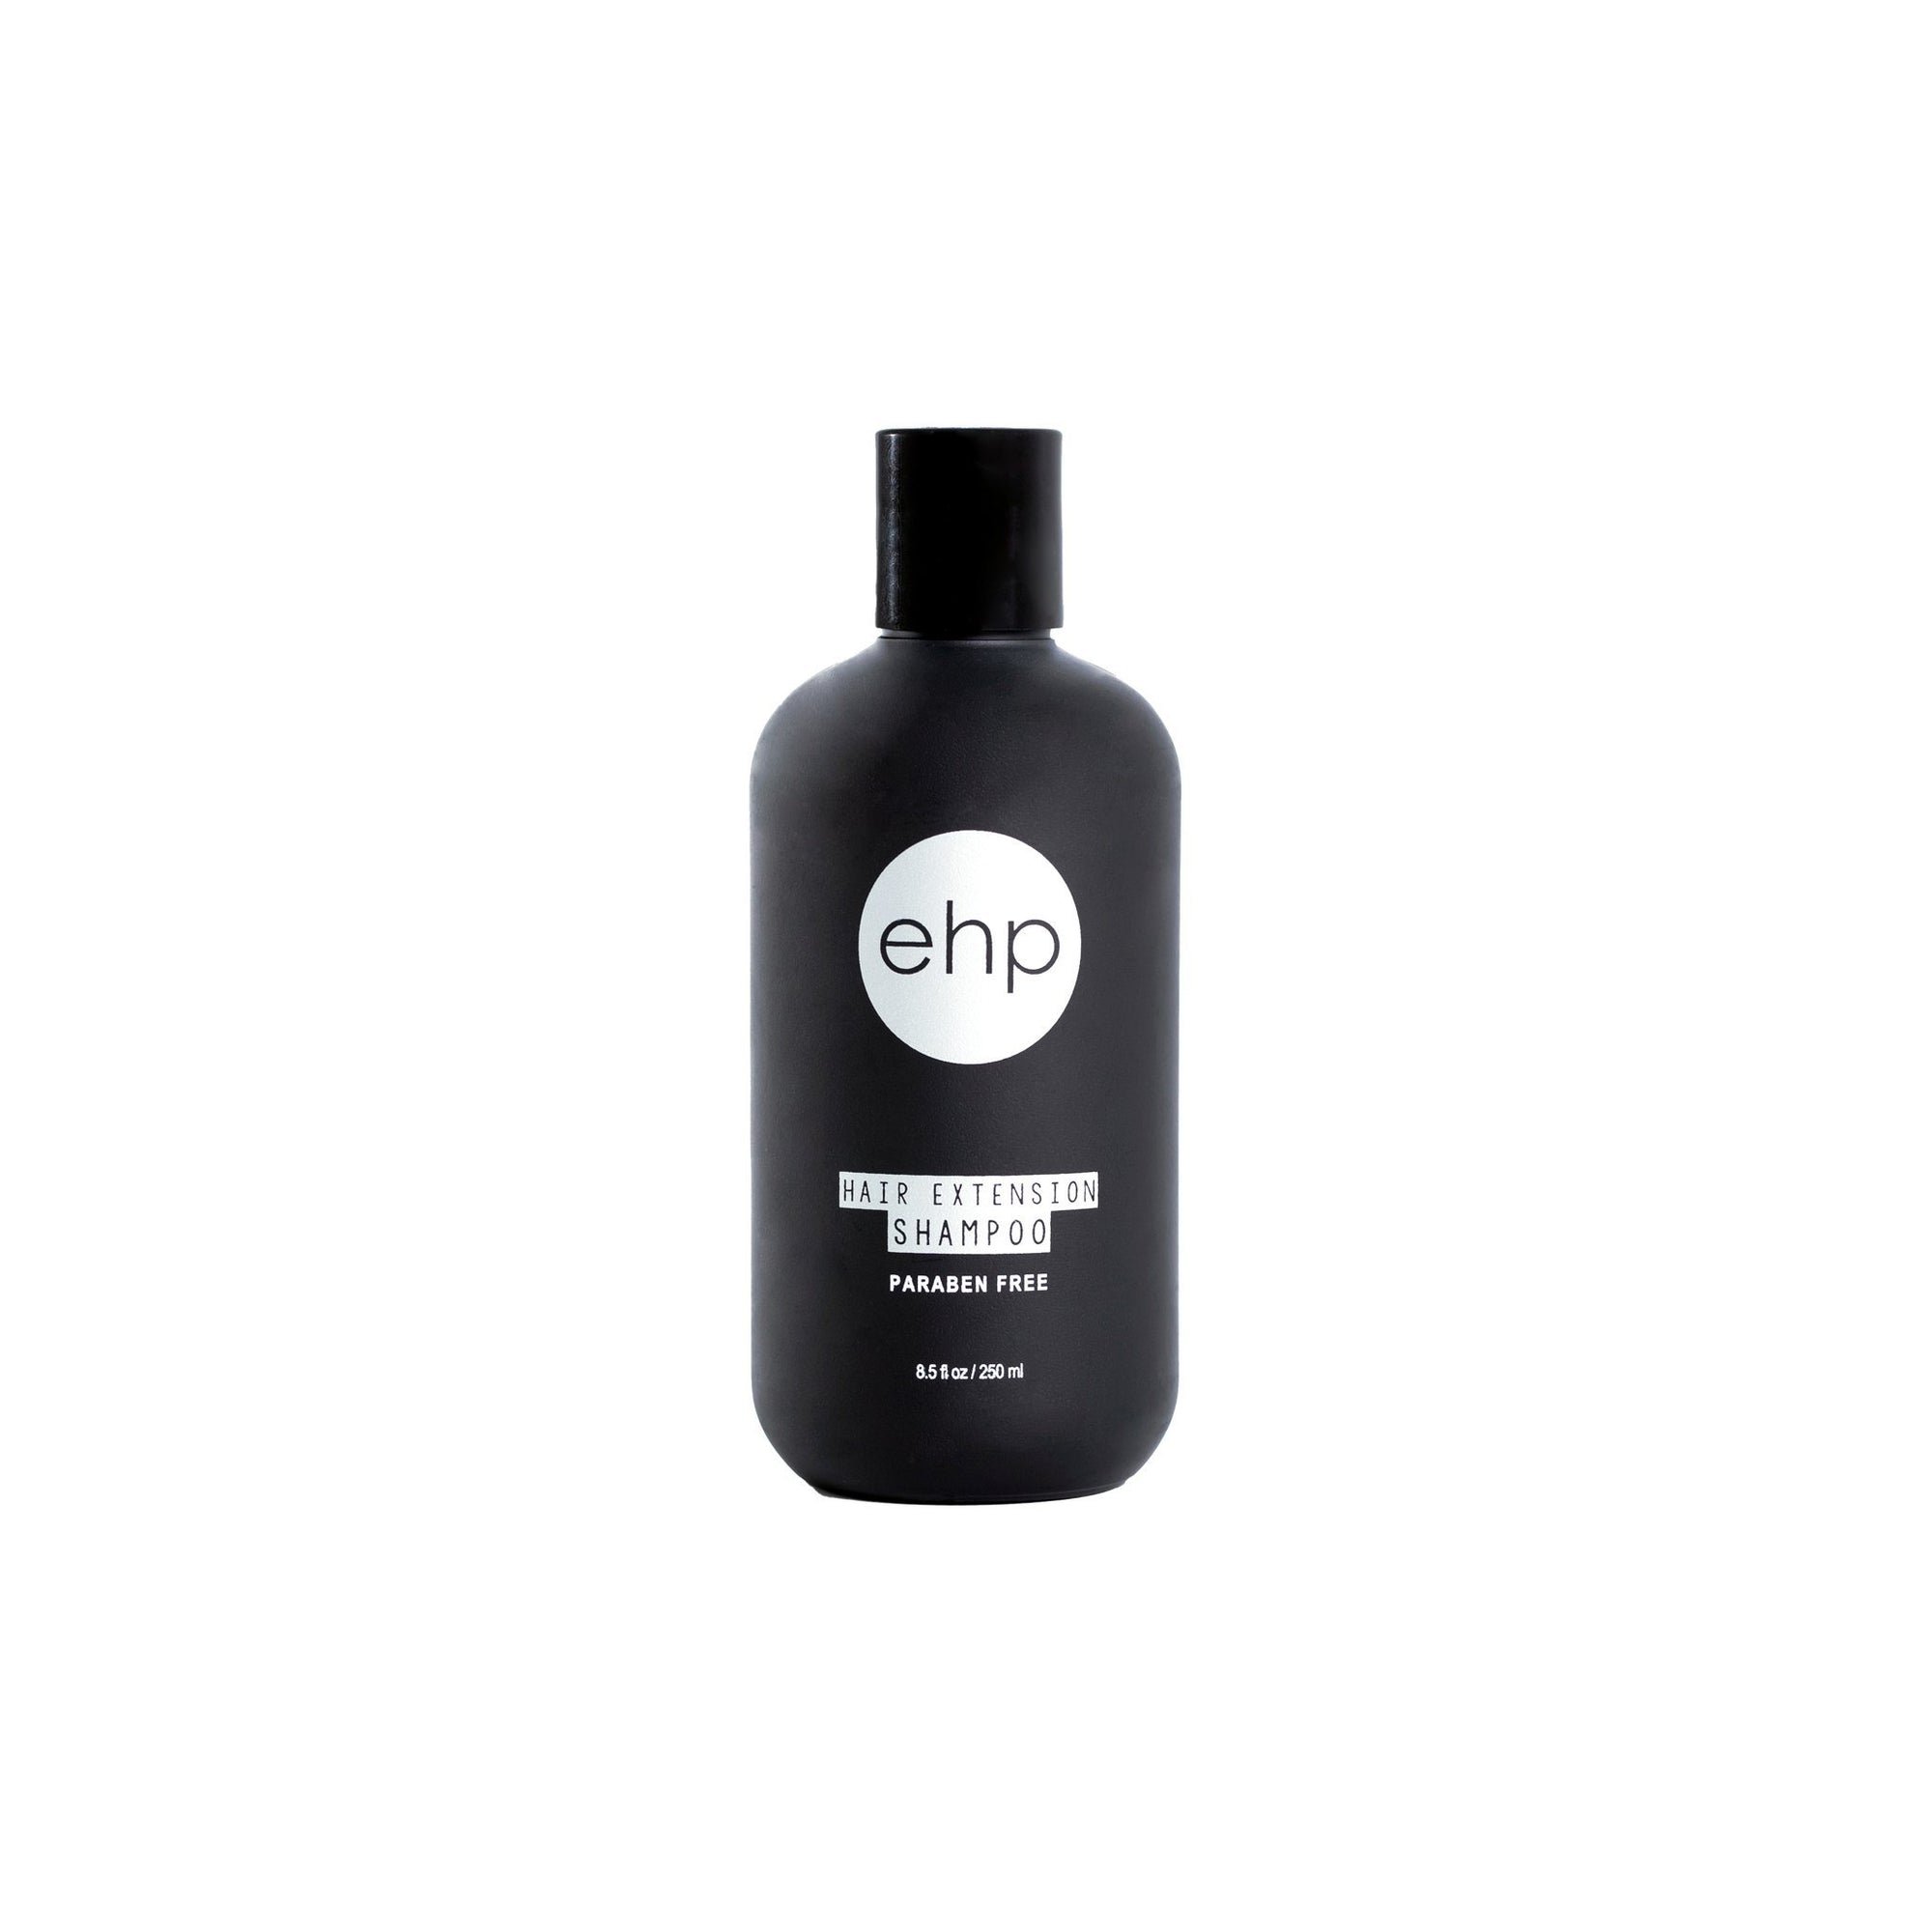 ehp Hair Extension Shampoo 200ml